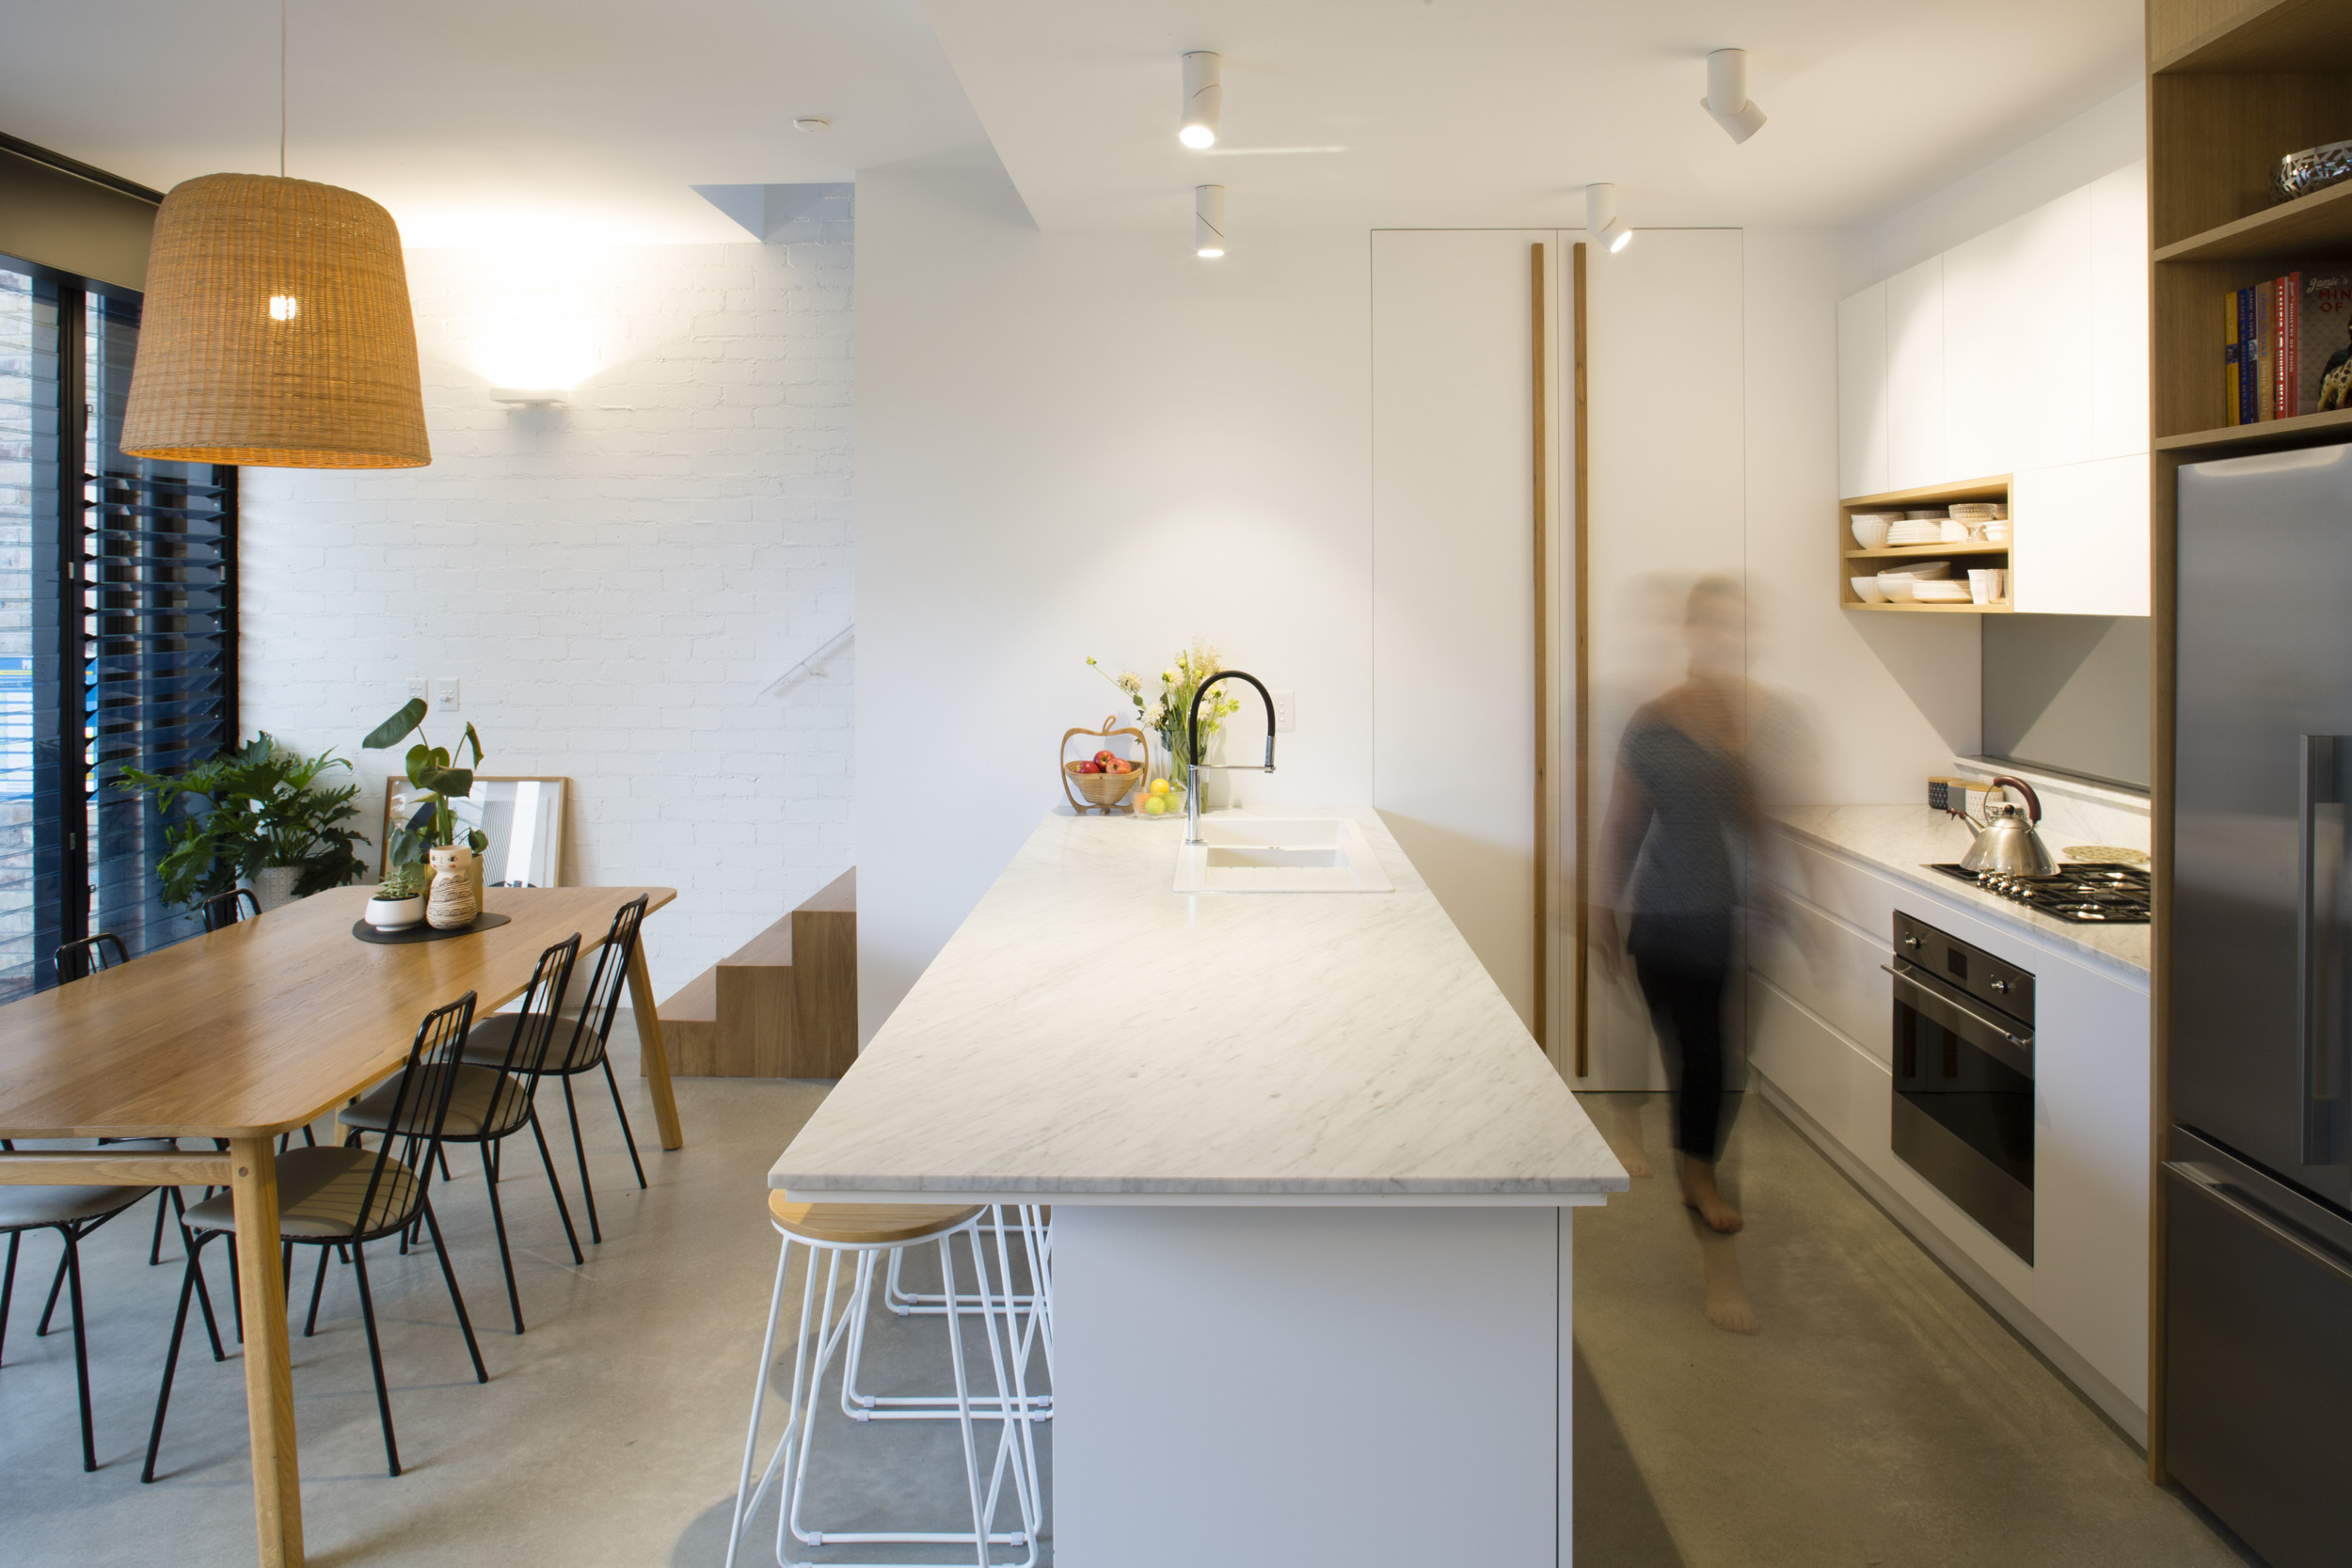 residential_architects_sq_projects_sydney_10.jpg